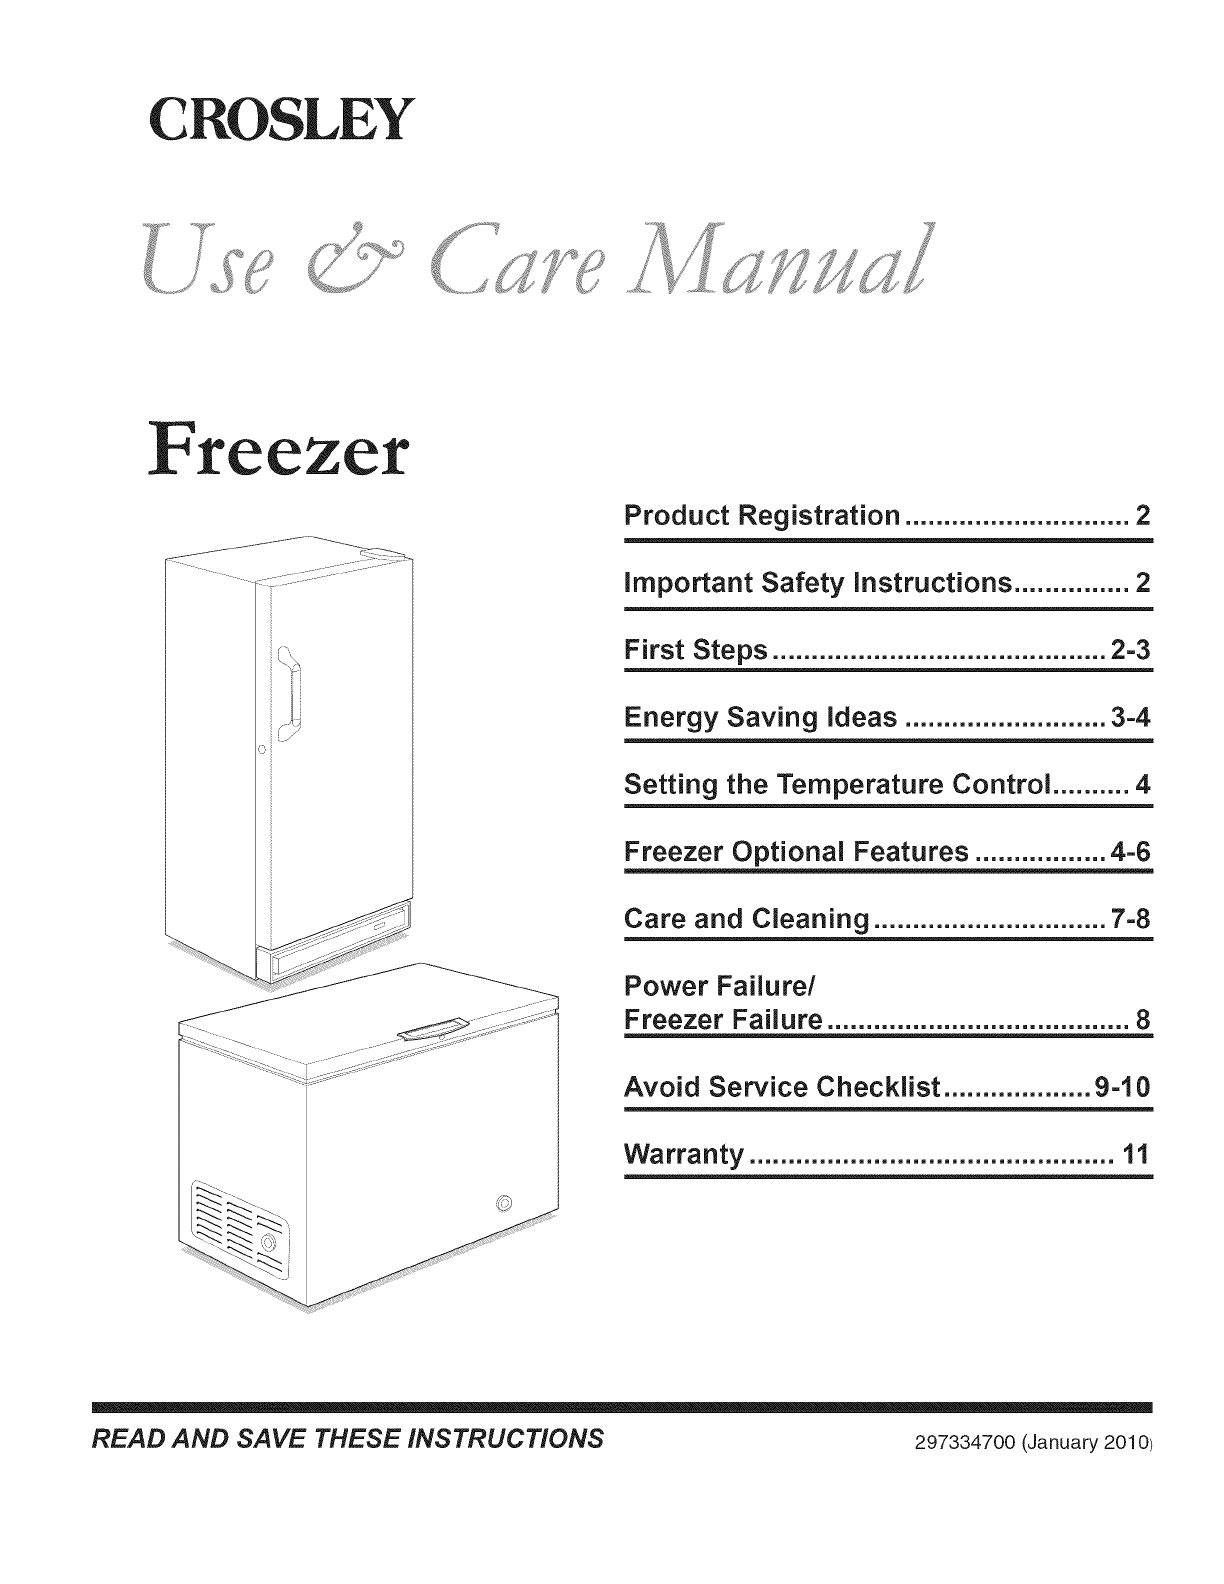 Crosley Cfc09lw0 User Manual Freezer Manuals And Guides L1002466